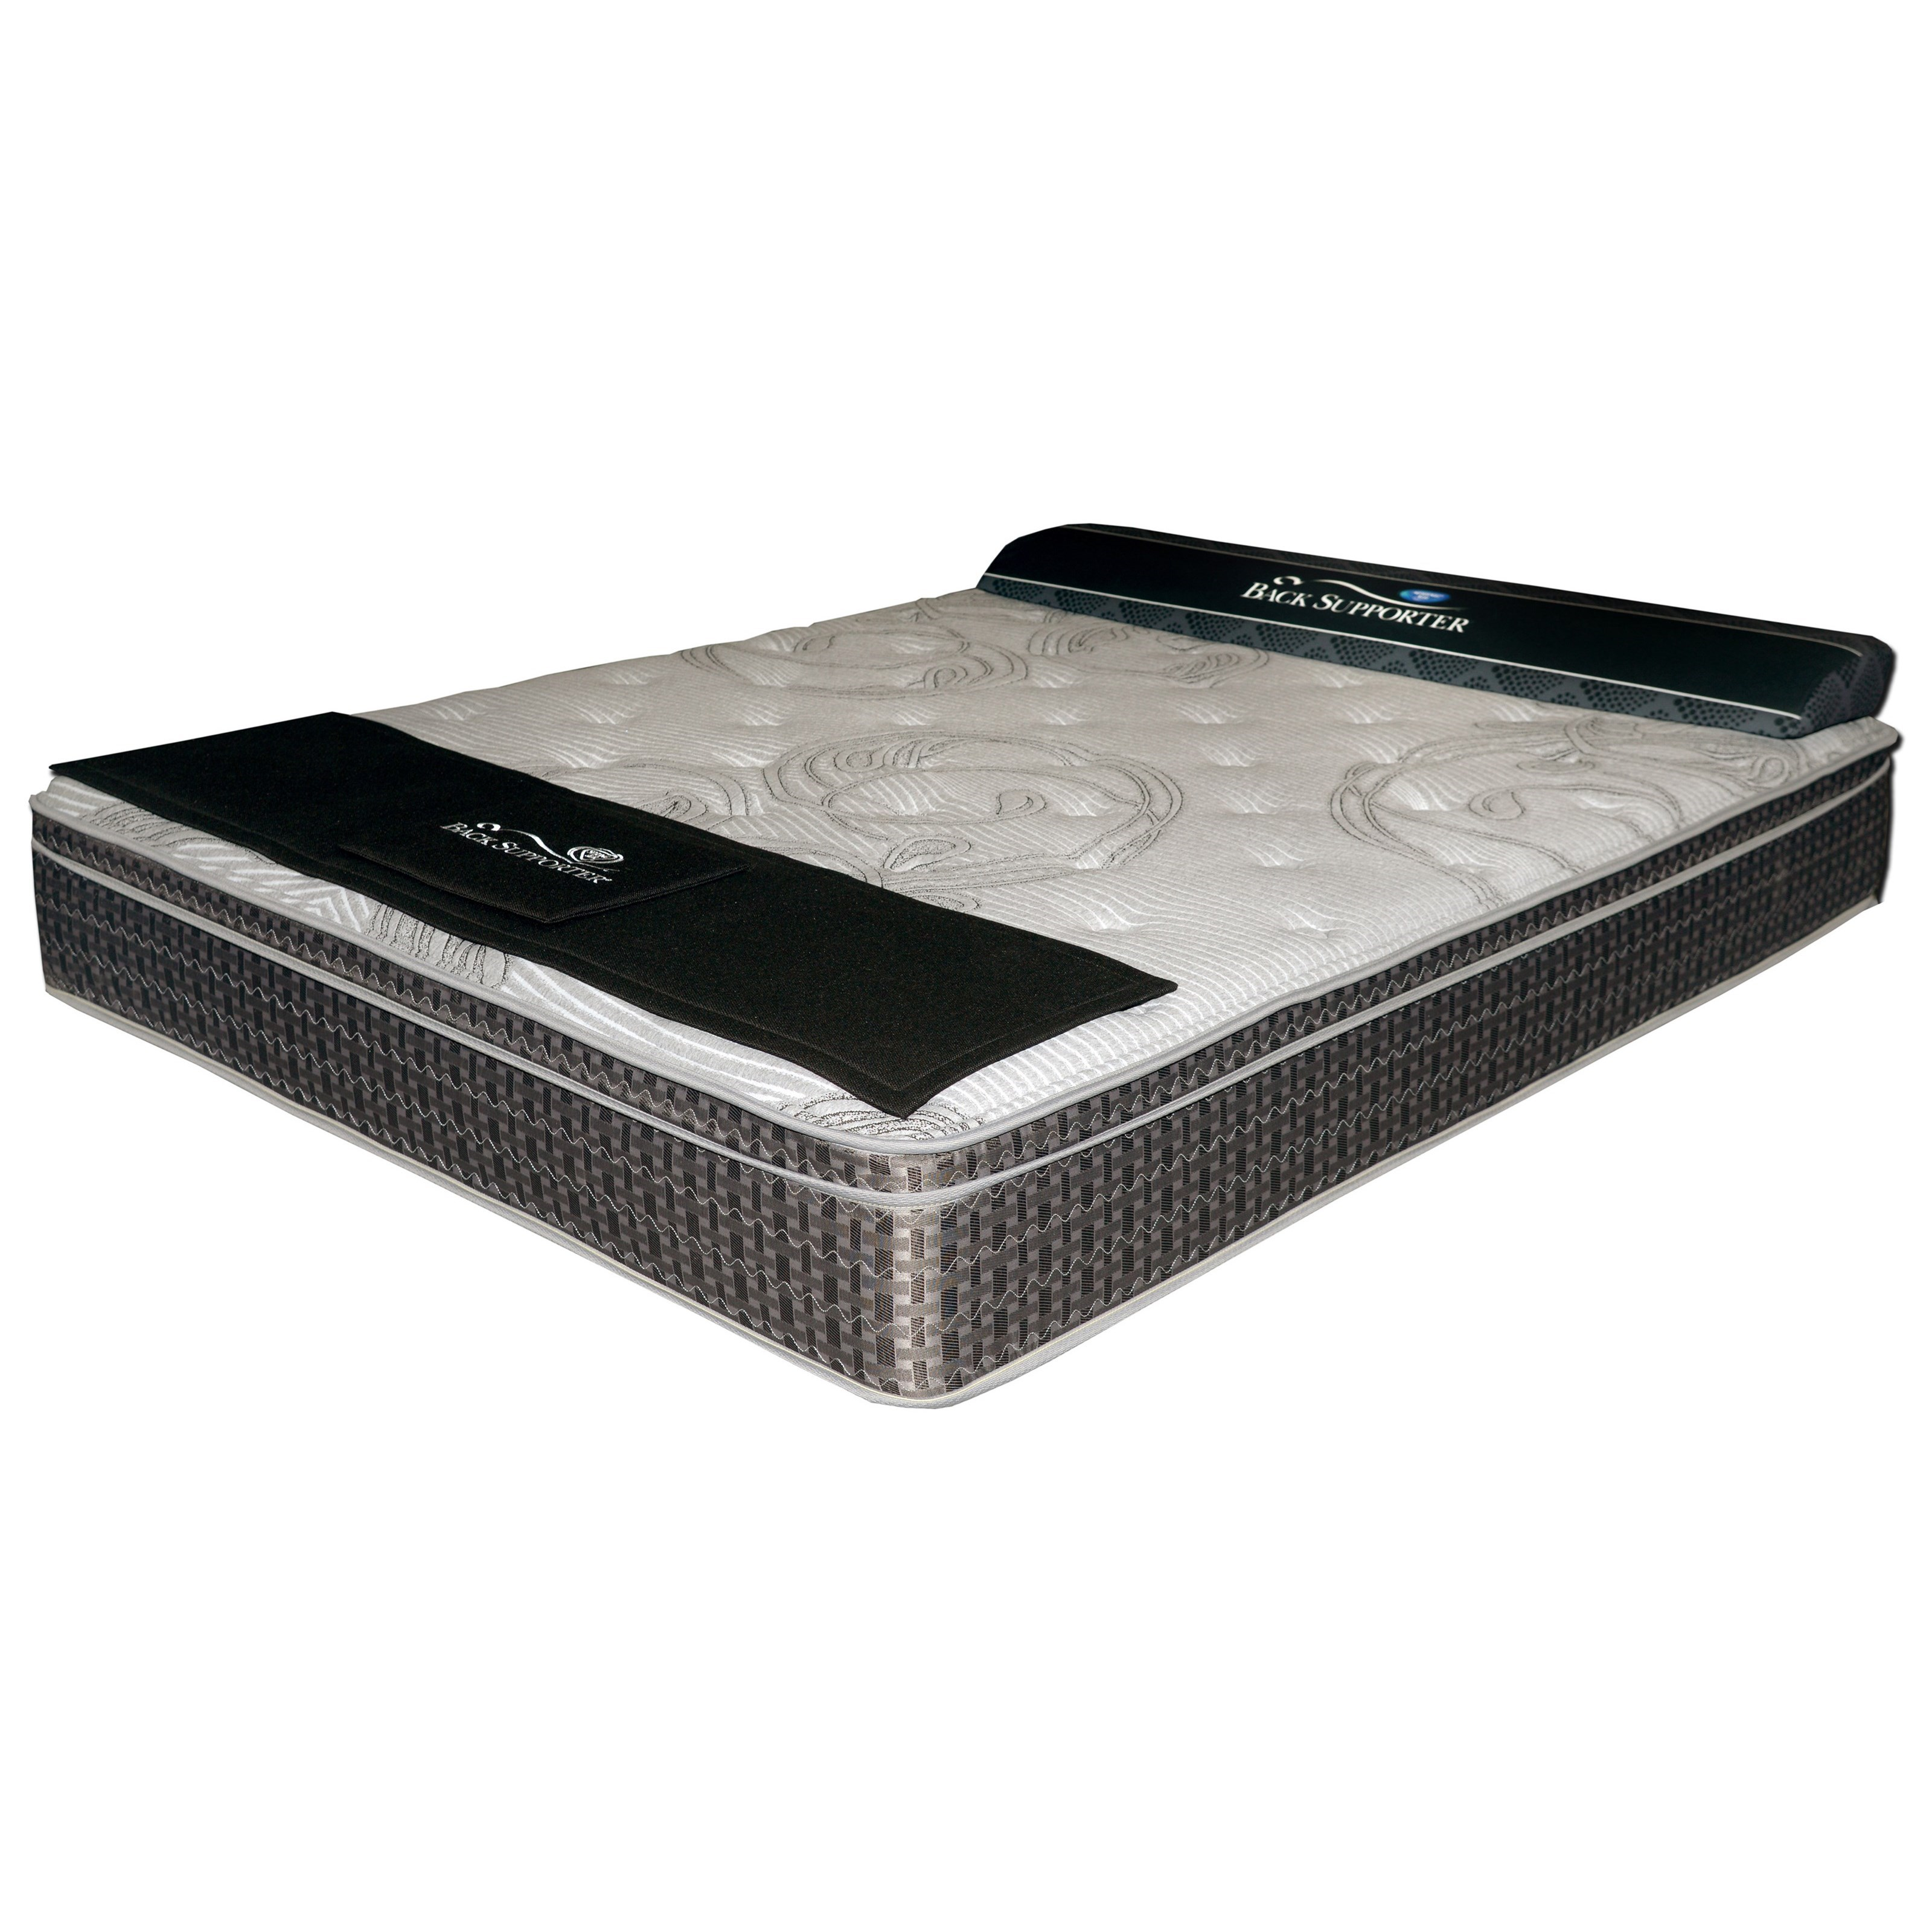 Iris Pillow Top Twin XL Pocketed Coil Mattress by Spring Air at Goods Furniture